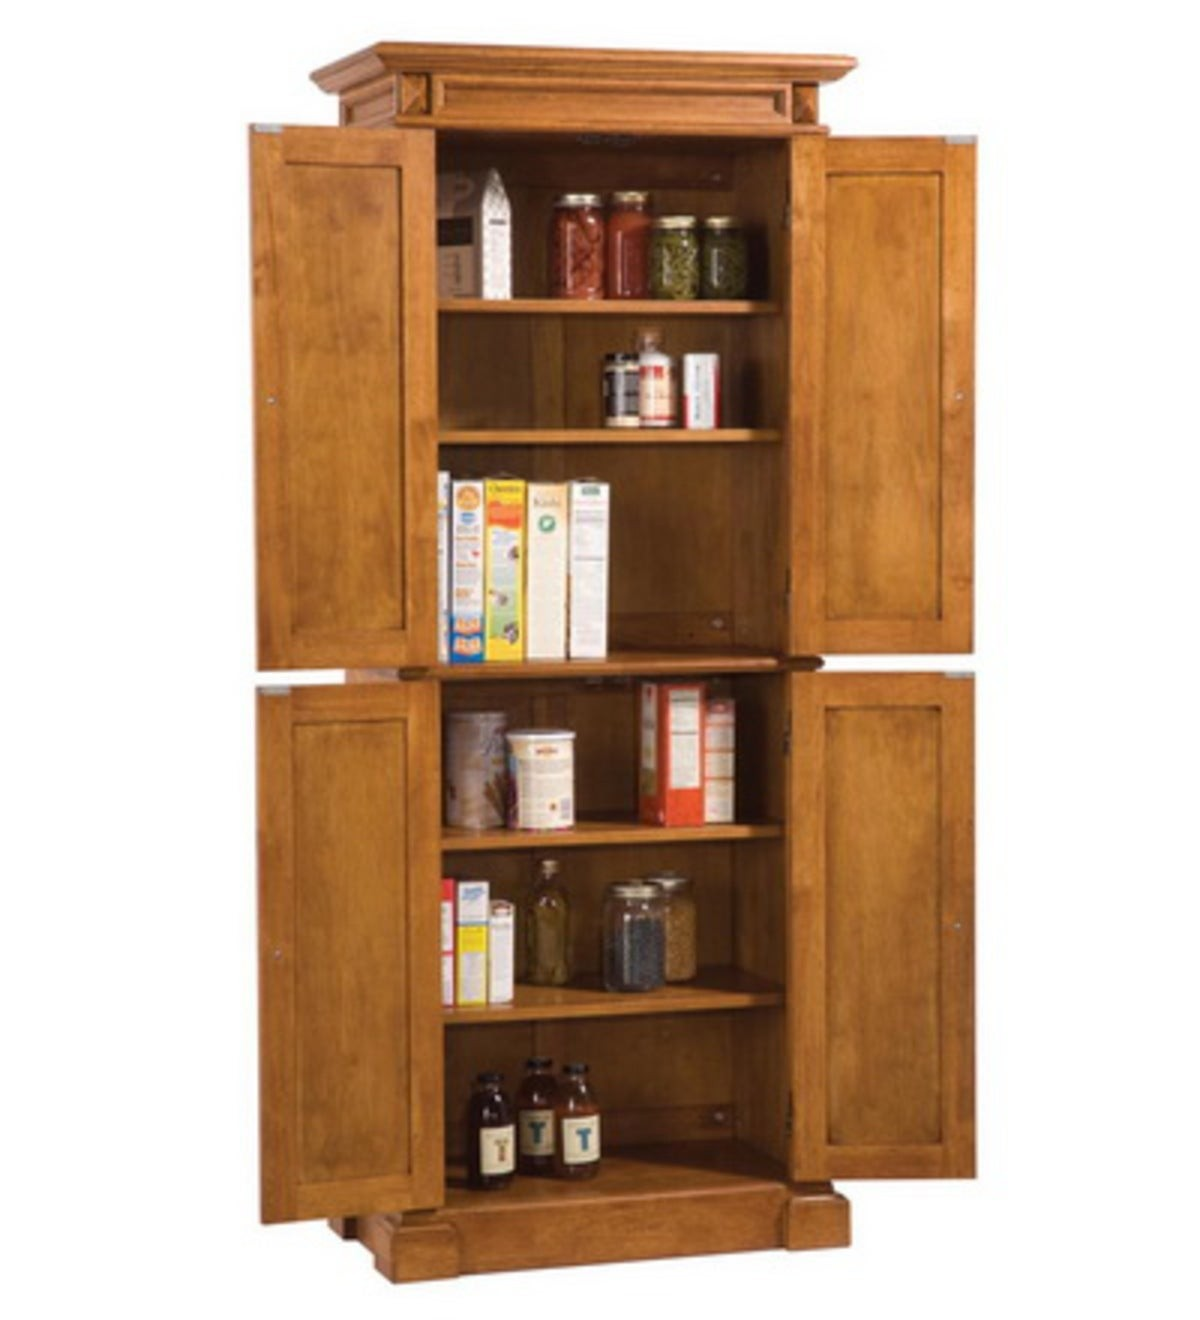 Free Standing Kitchen Storage Cabinets Details About Pantry Storage Cabinet